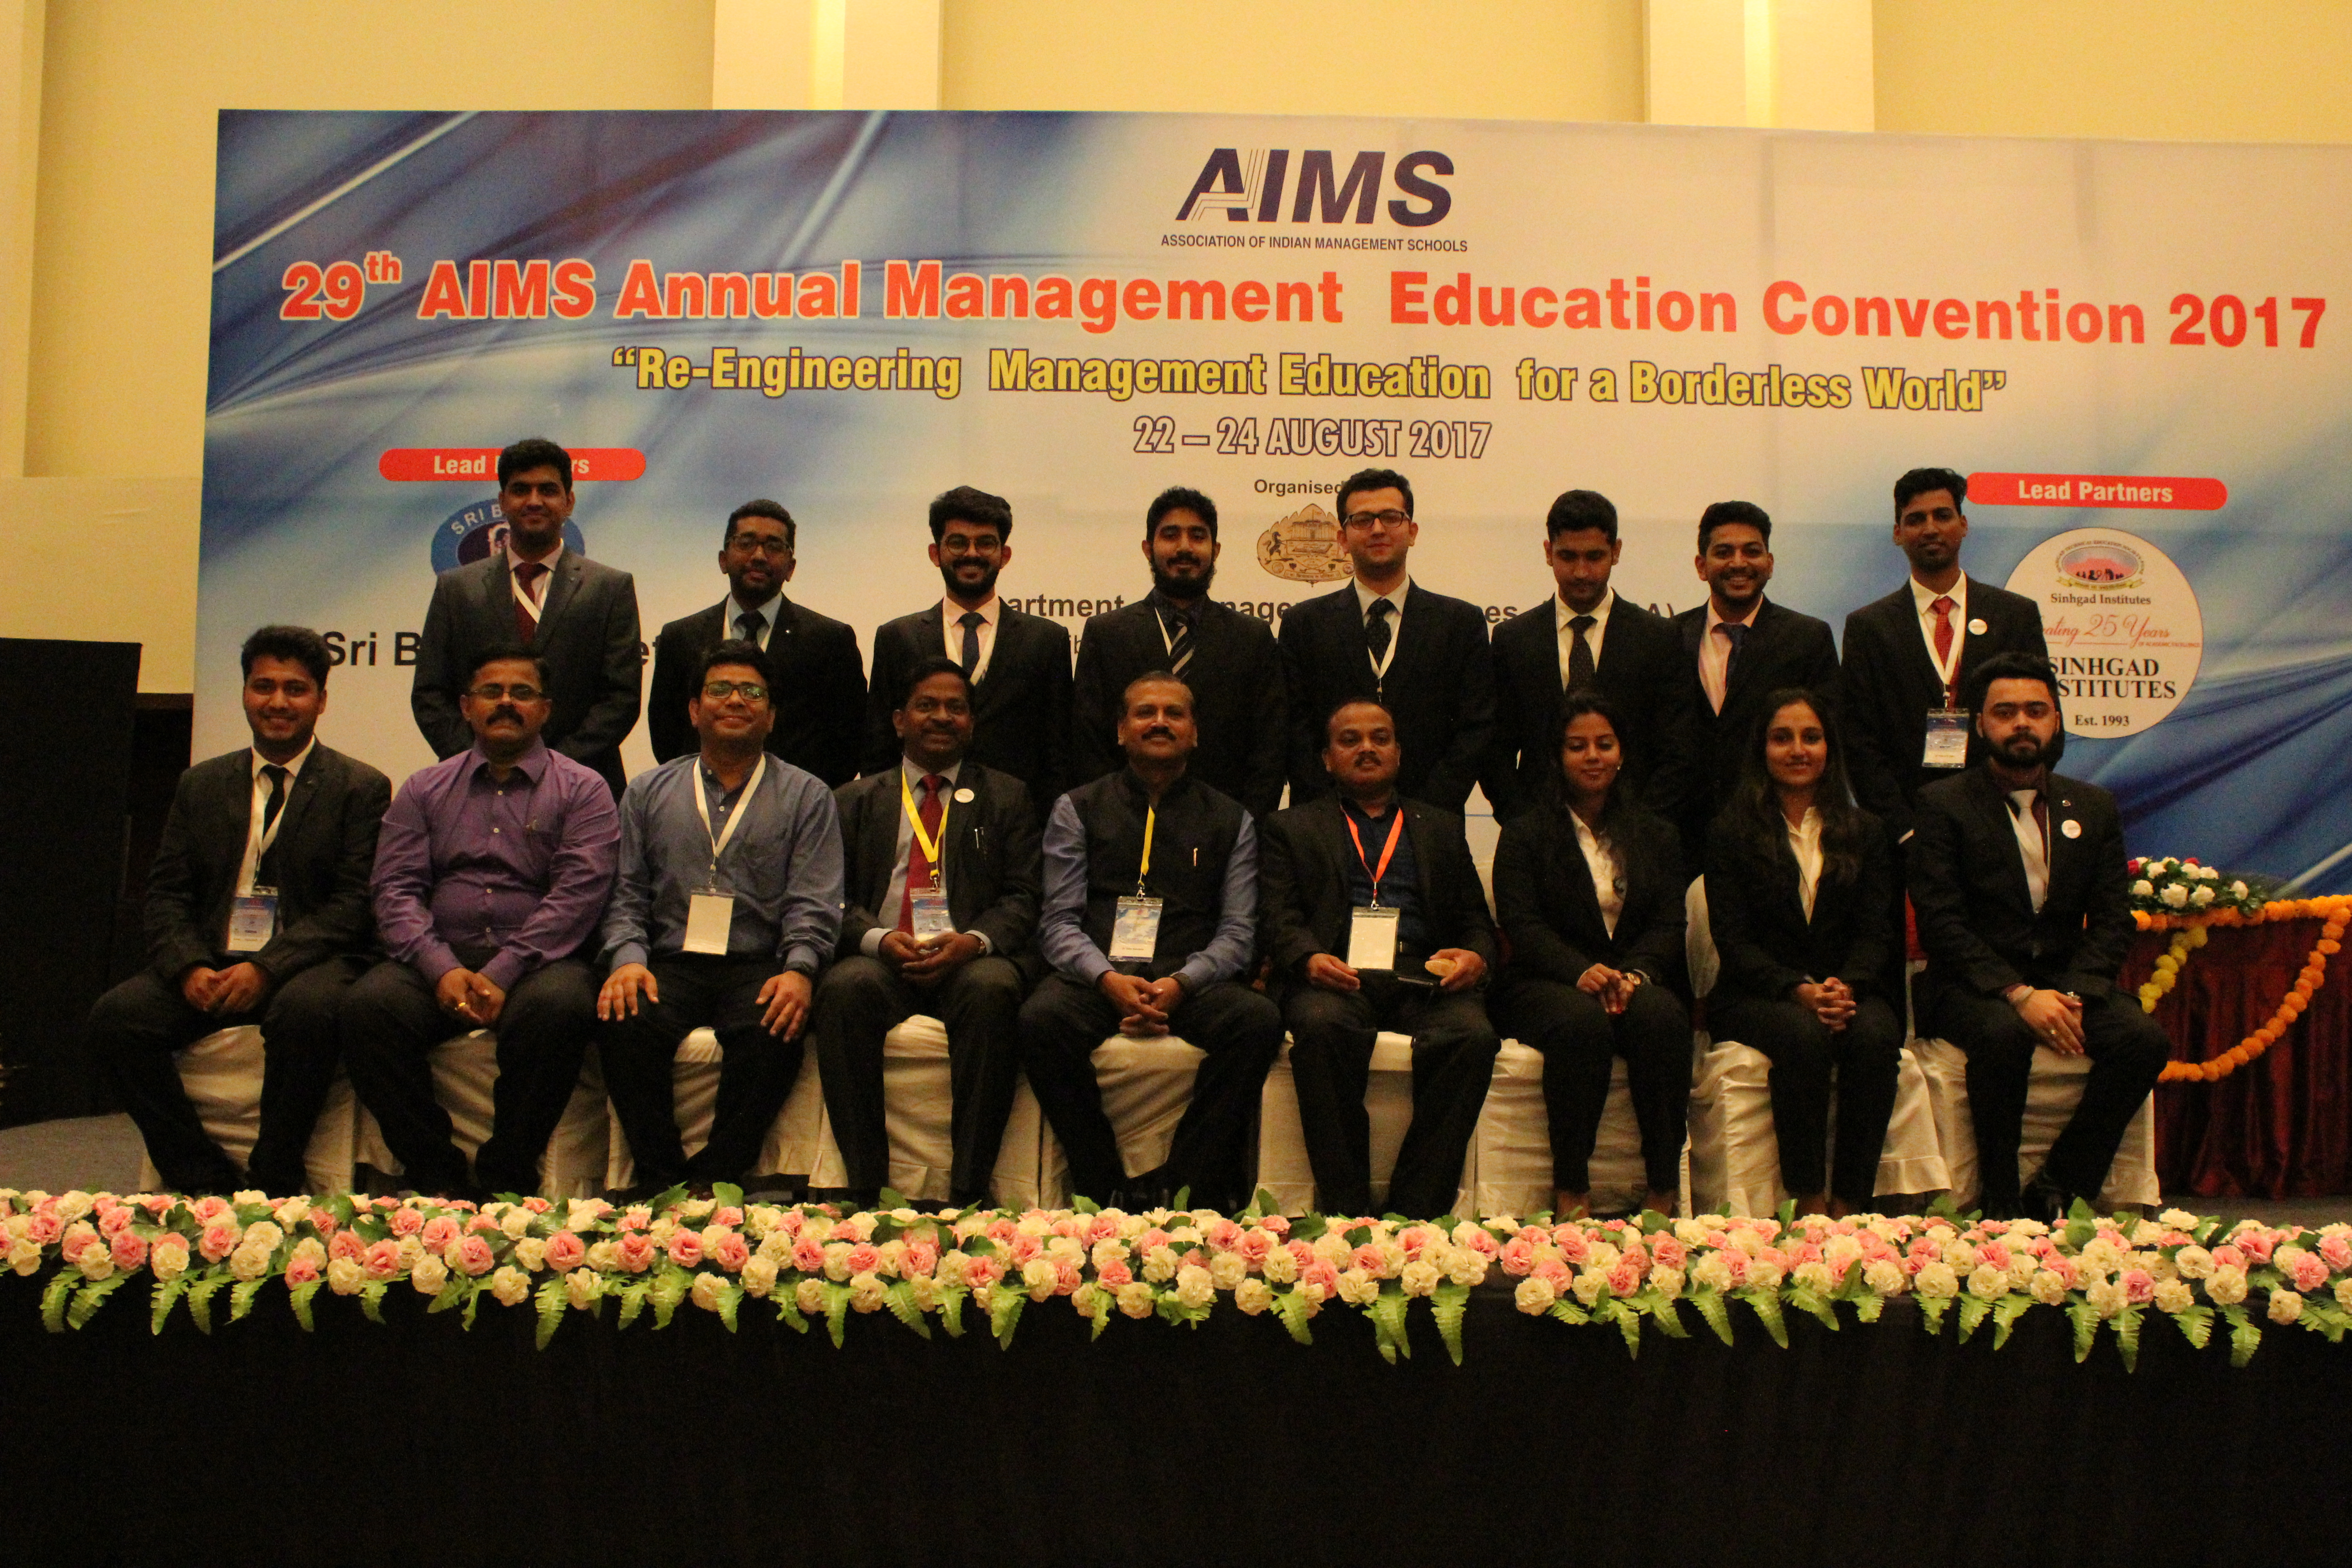 29th AIMS Annual Management Education Convention